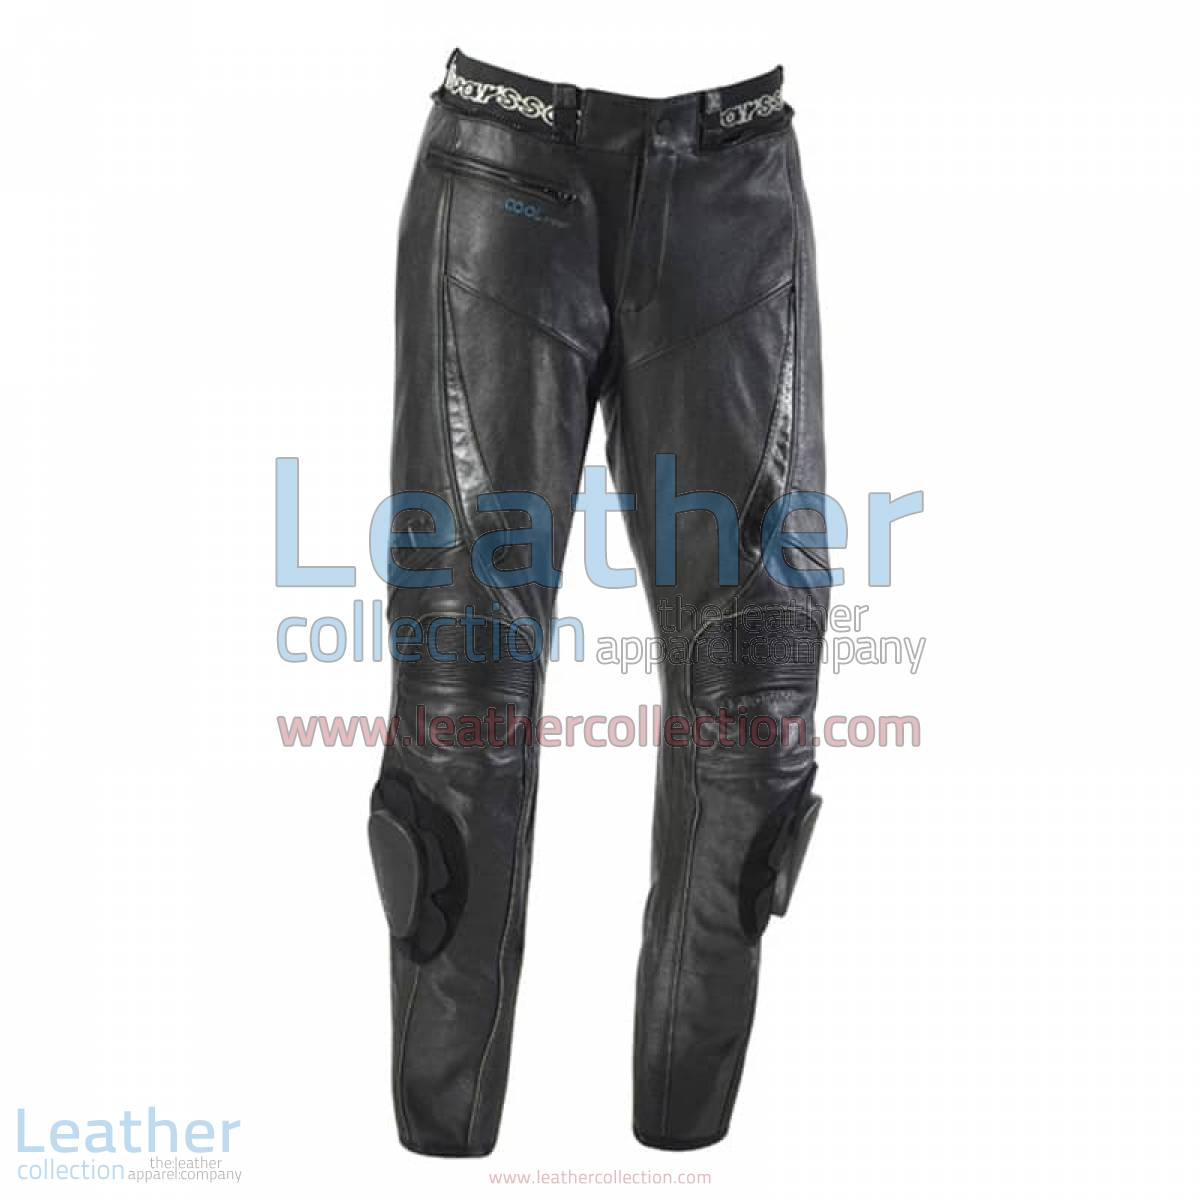 Leather Cool Motorcycle Pants | cool motorcycle pants